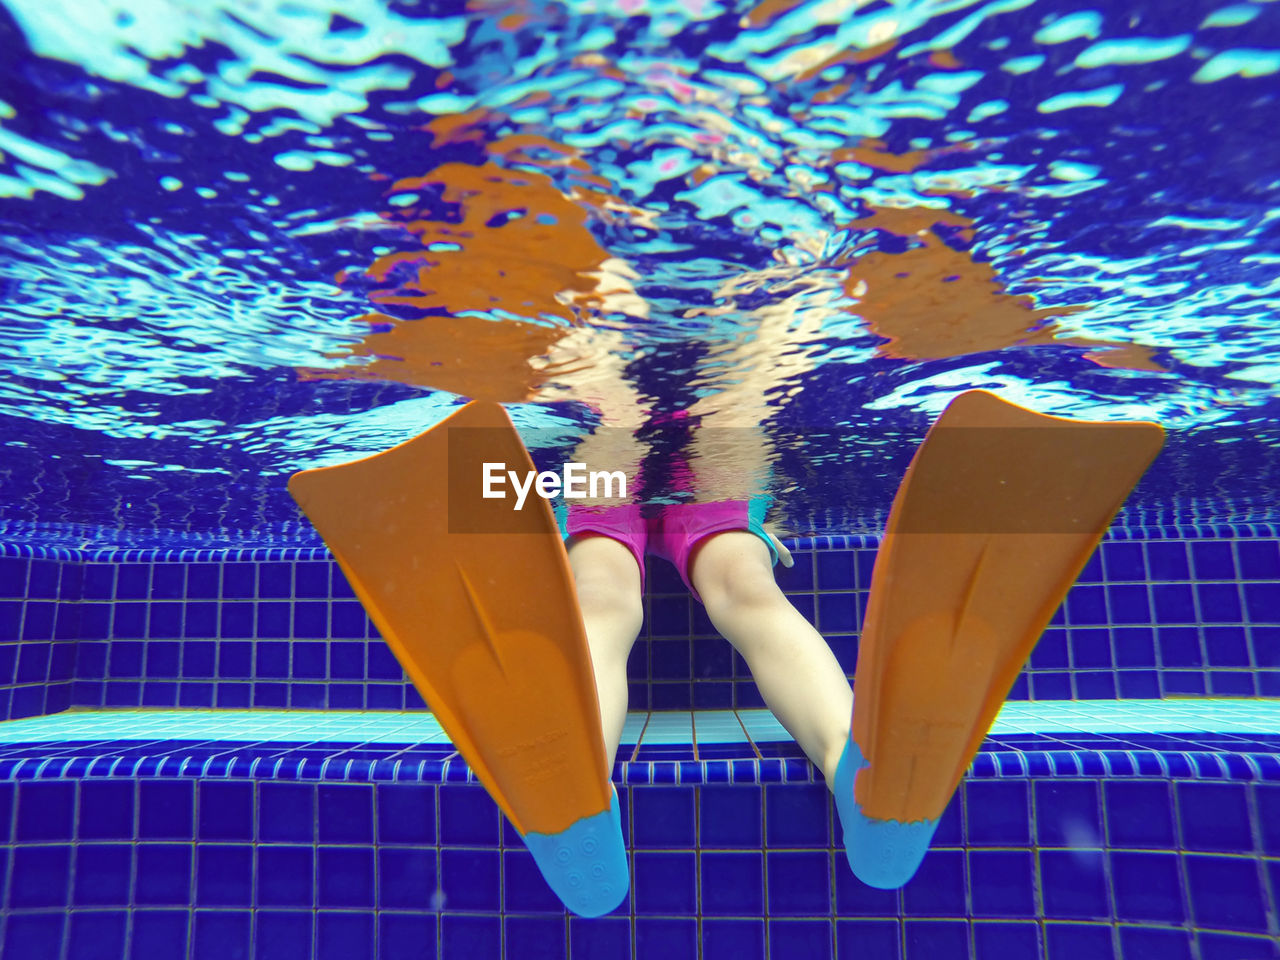 Low angle view of person wearing diving flipper in swimming pool